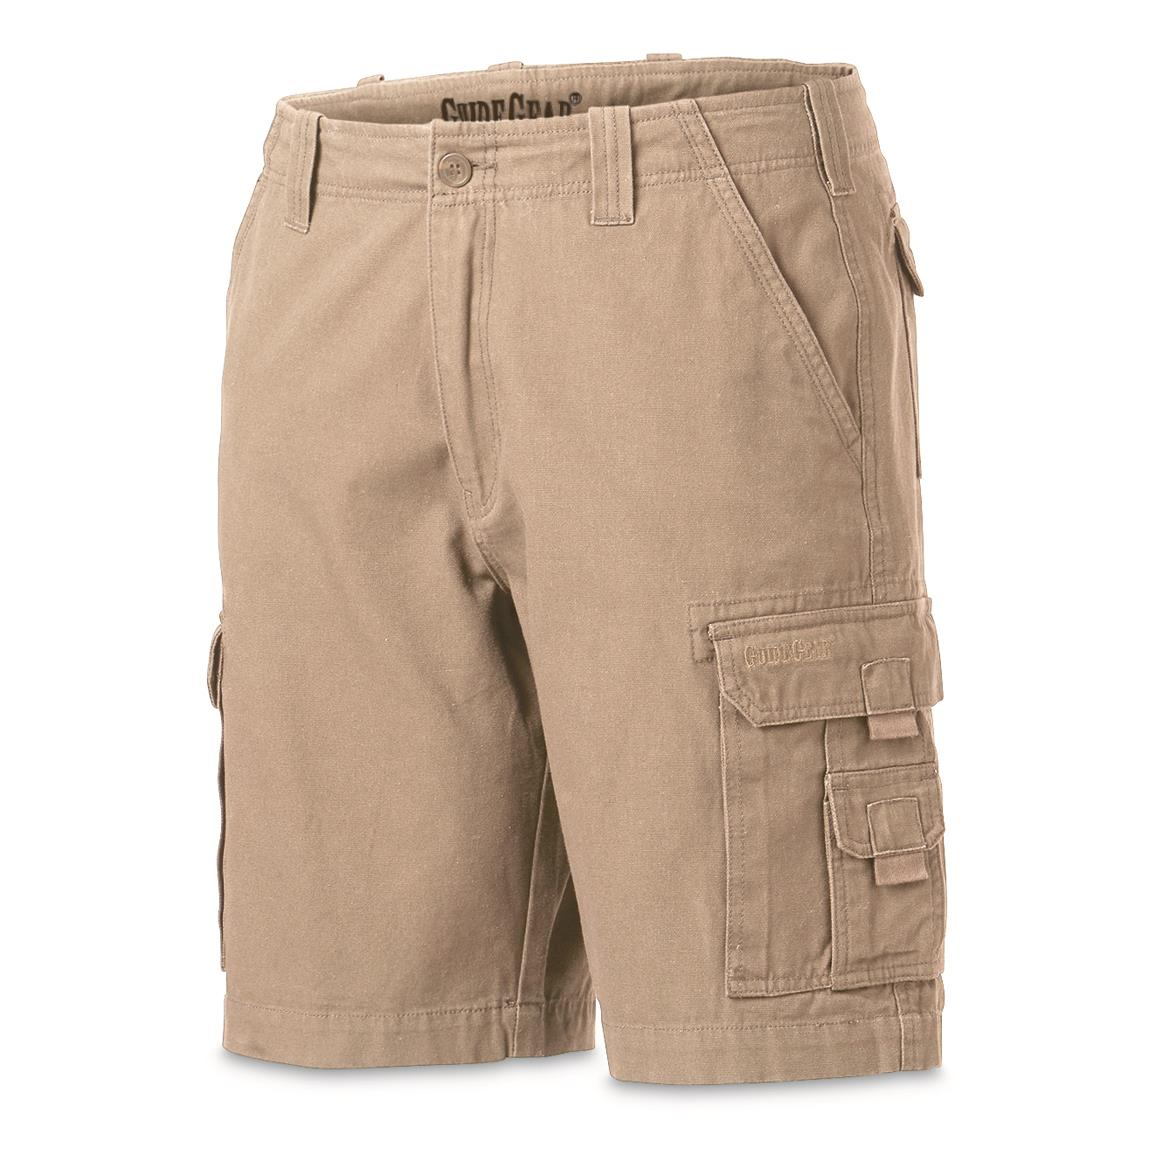 2 flap cargo pockets